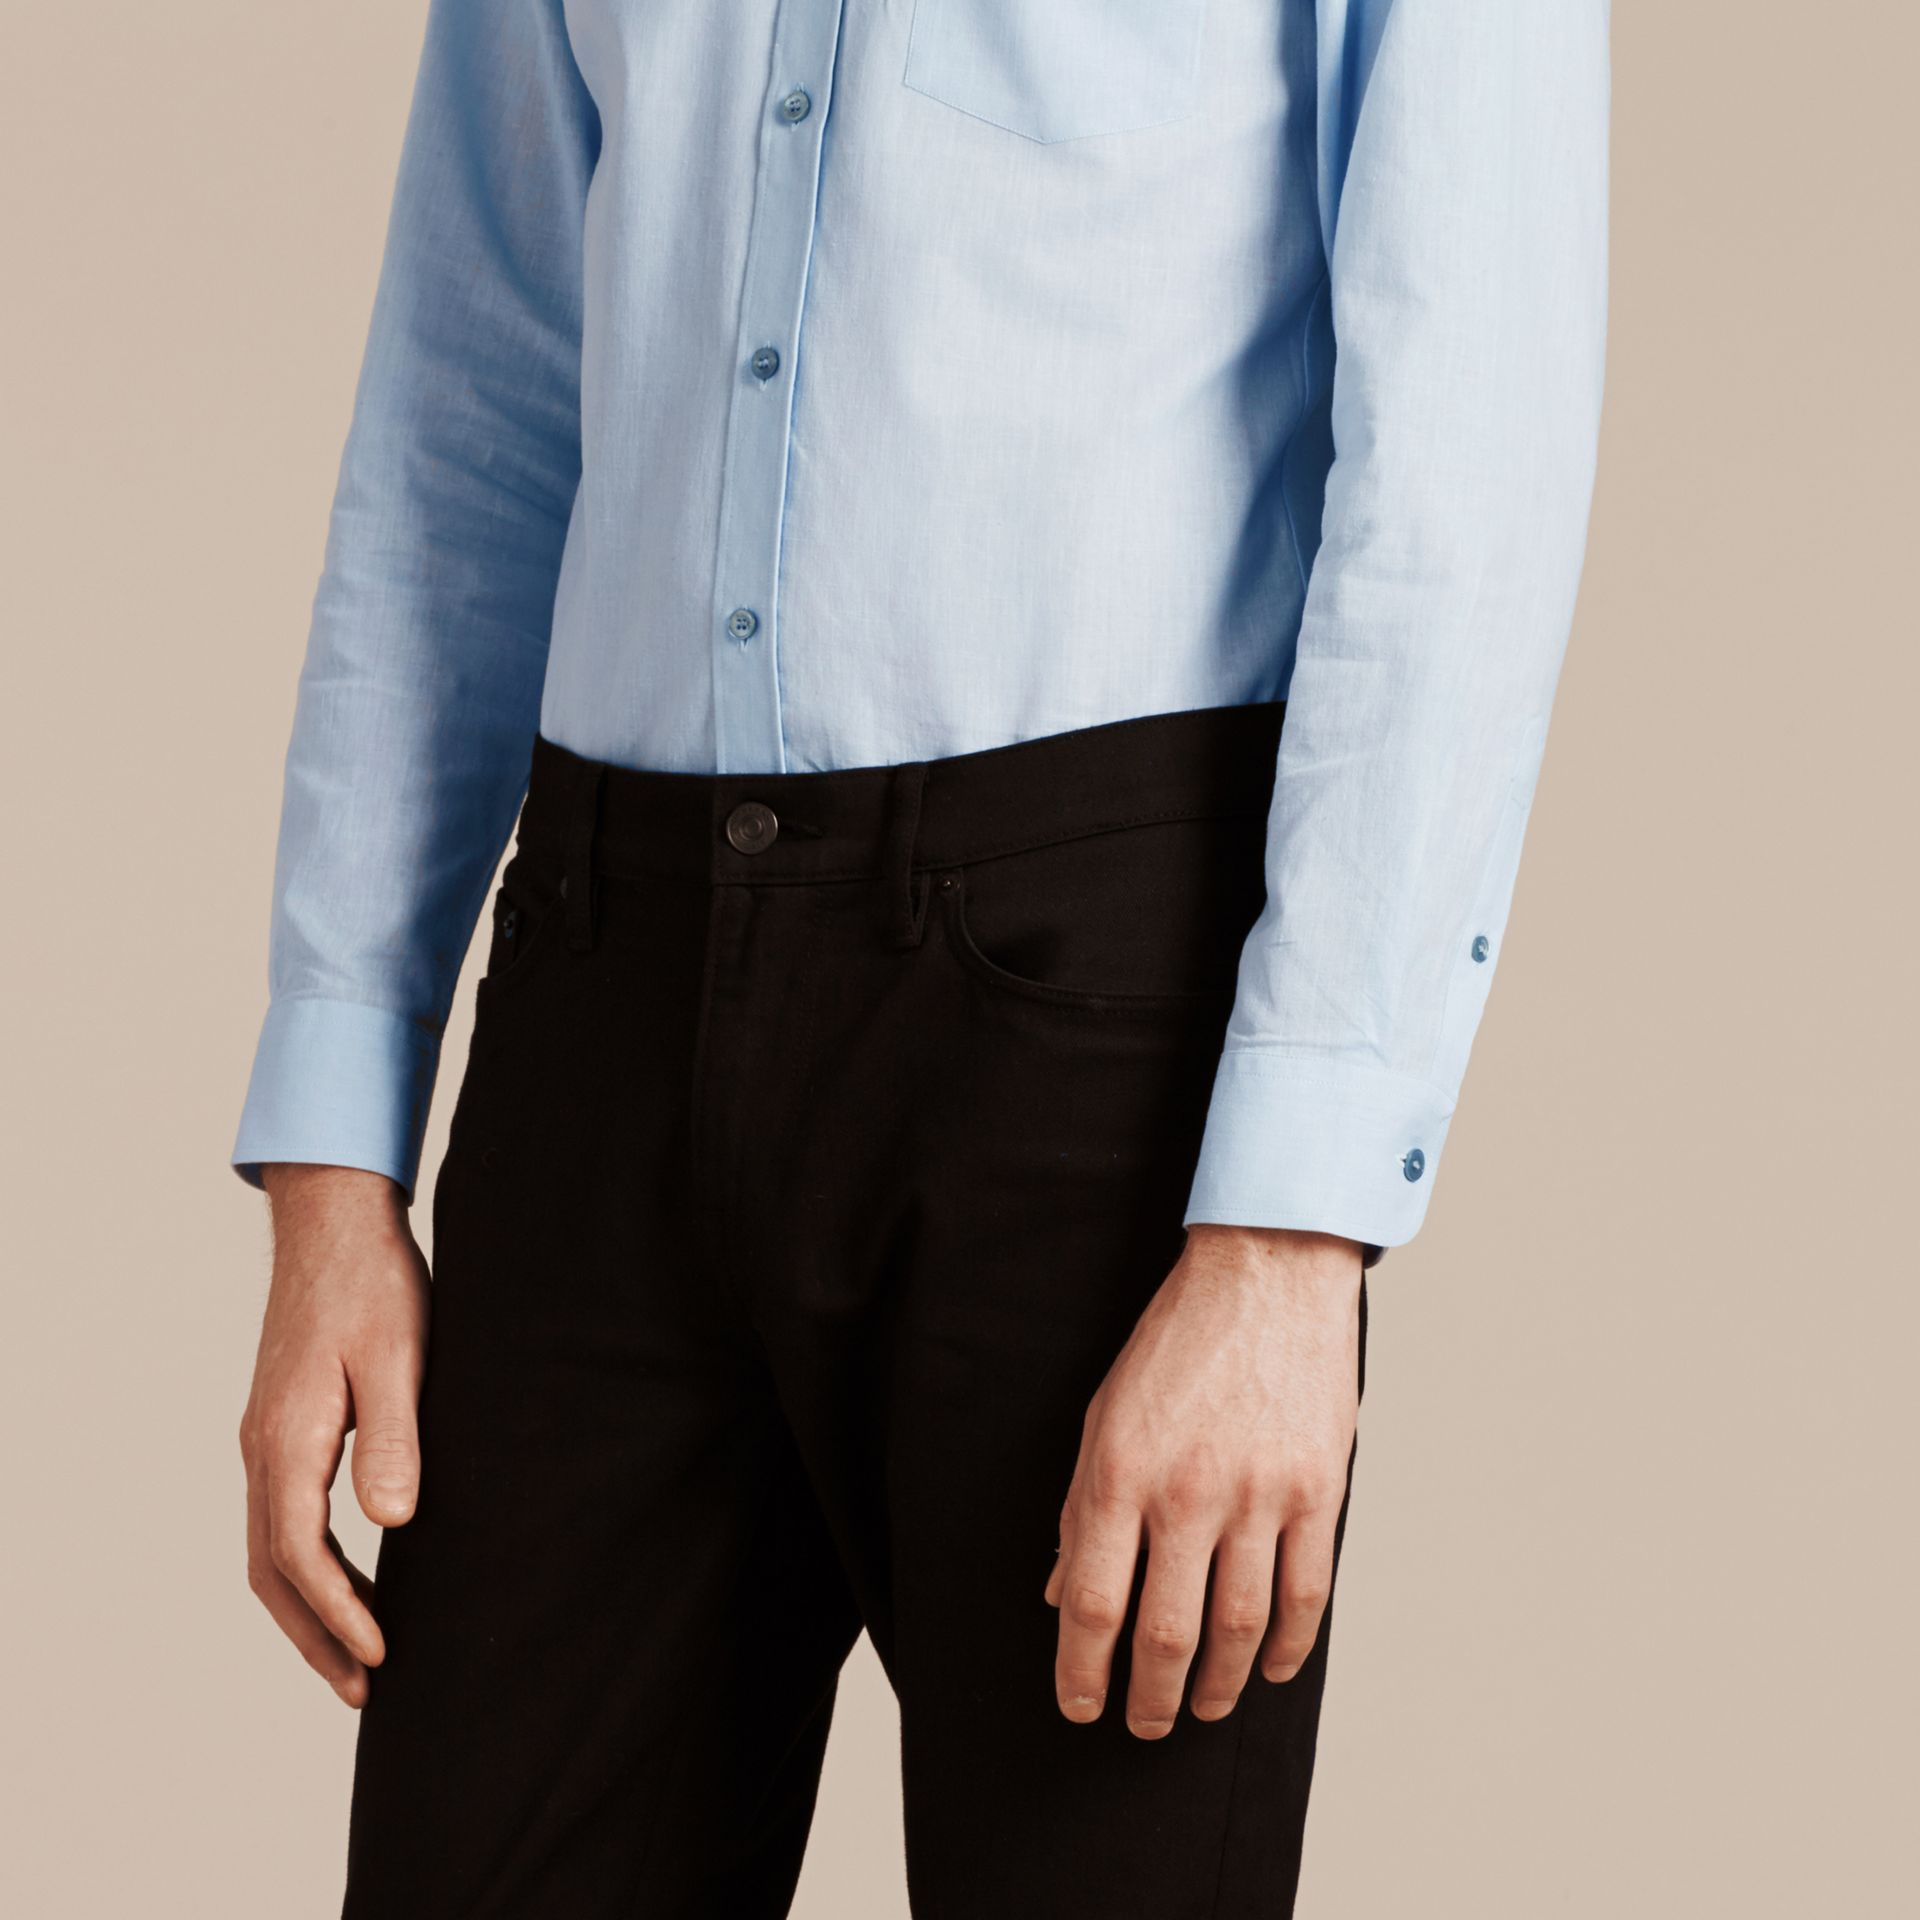 Pale blue Button-down Collar Cotton Linen Shirt Pale Blue - gallery image 5